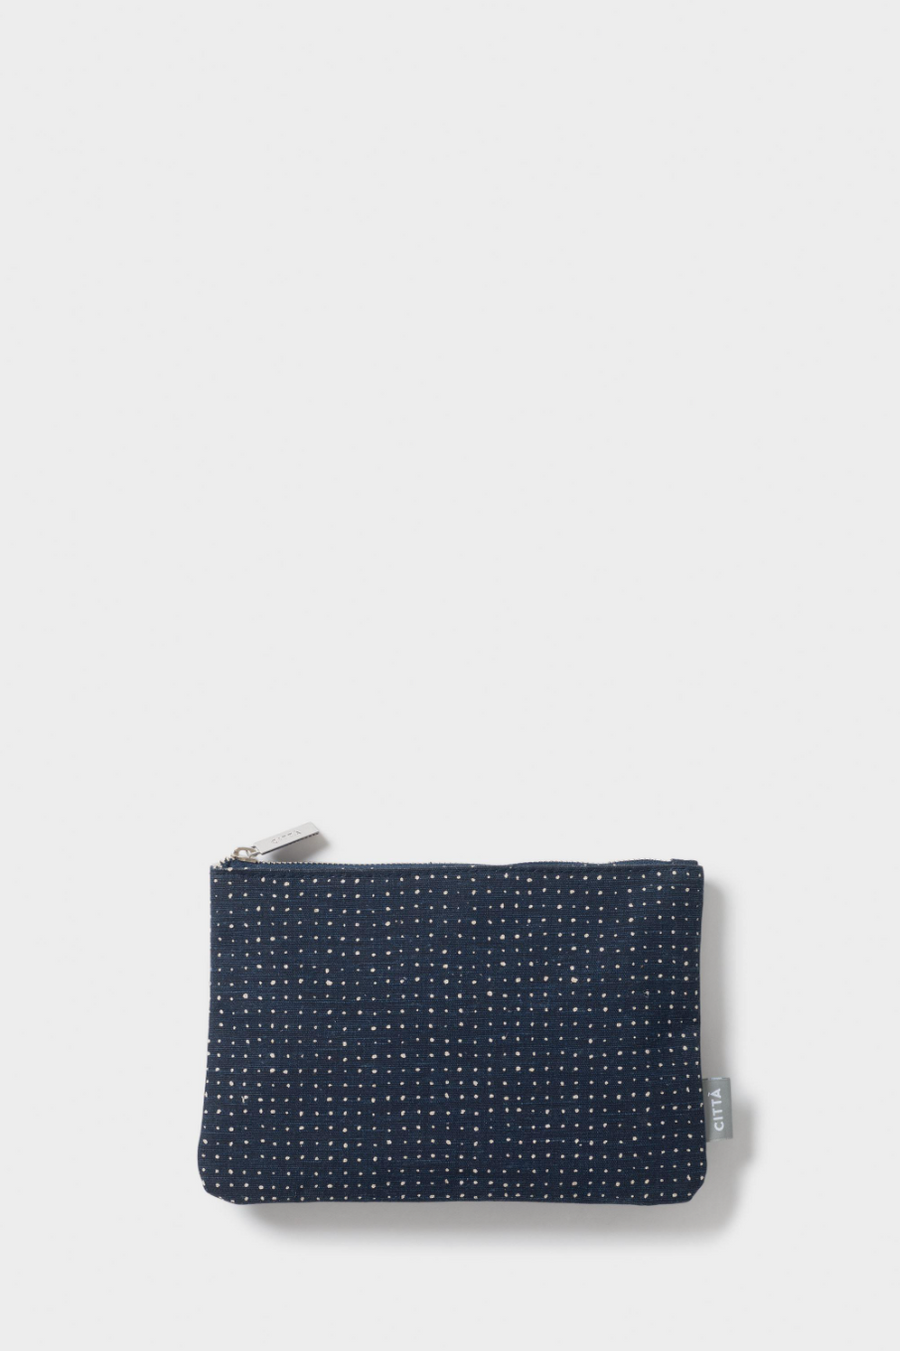 Inku Flat Purse - Midnight/Nat